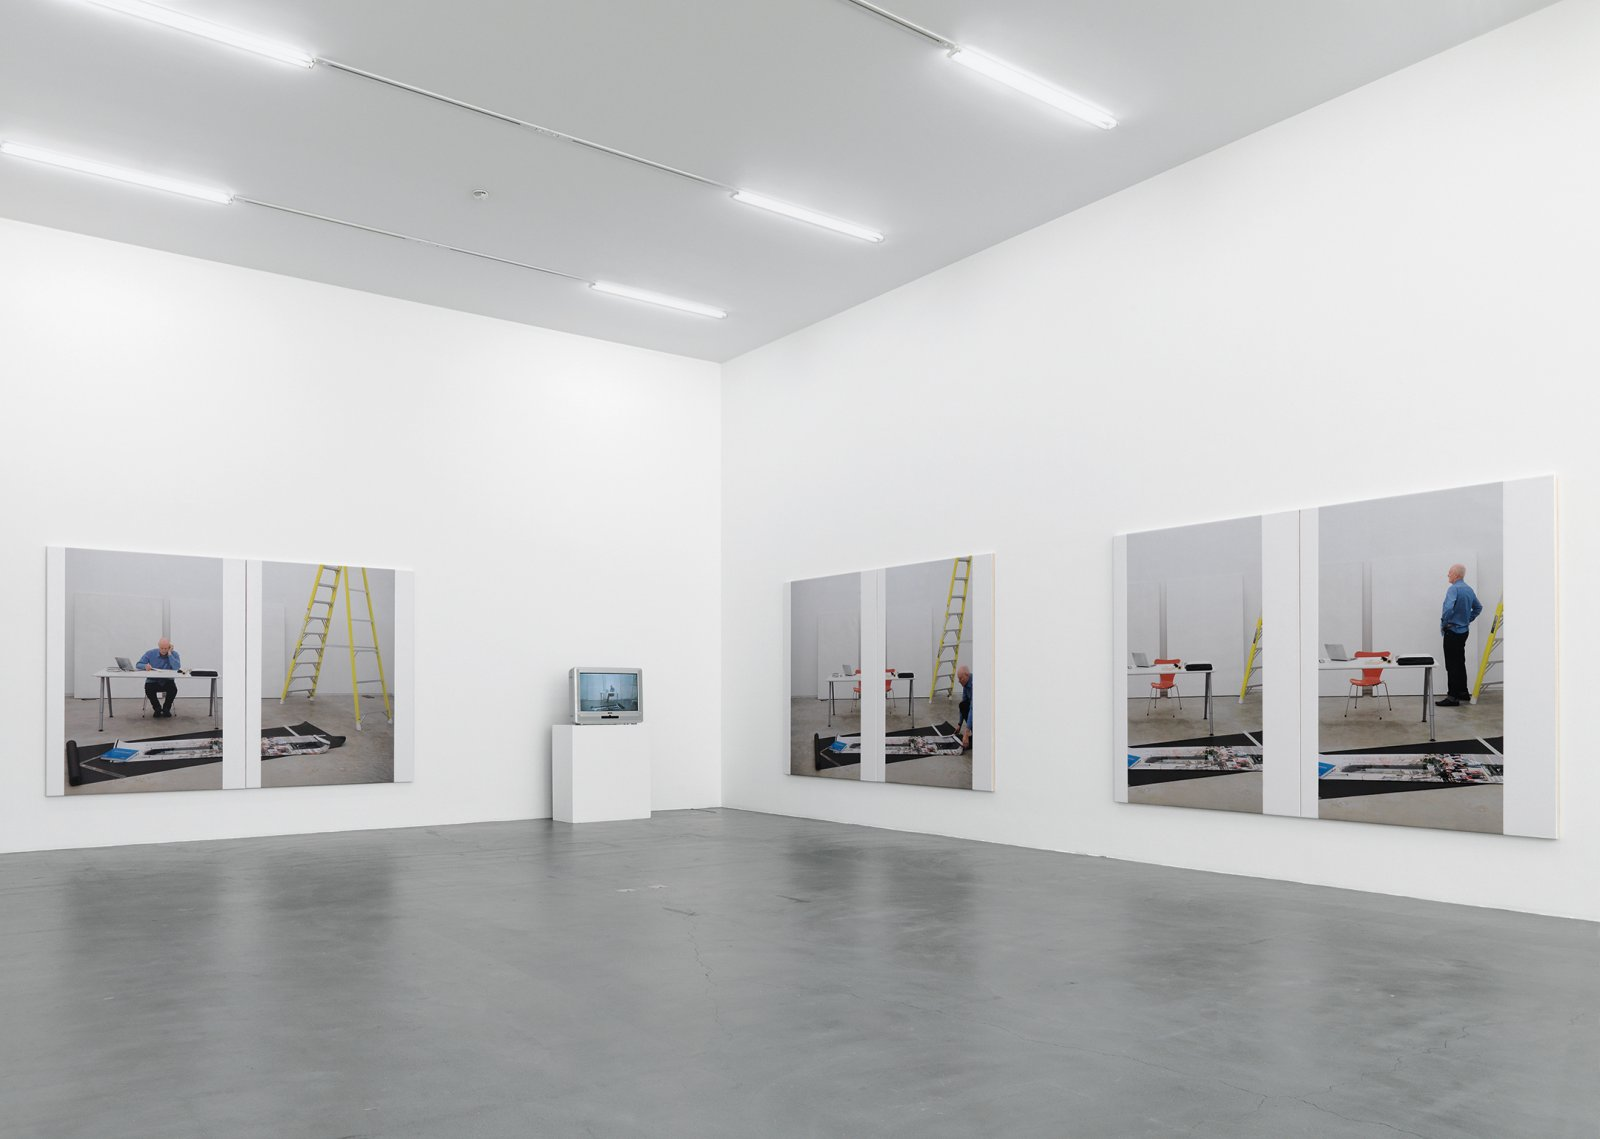 Ian Wallace, At Work 2008, 2008, installation, dimensions variable. Installation view, A Literature of Images, Kunsthalle Zürich, 2008 by Ian Wallace